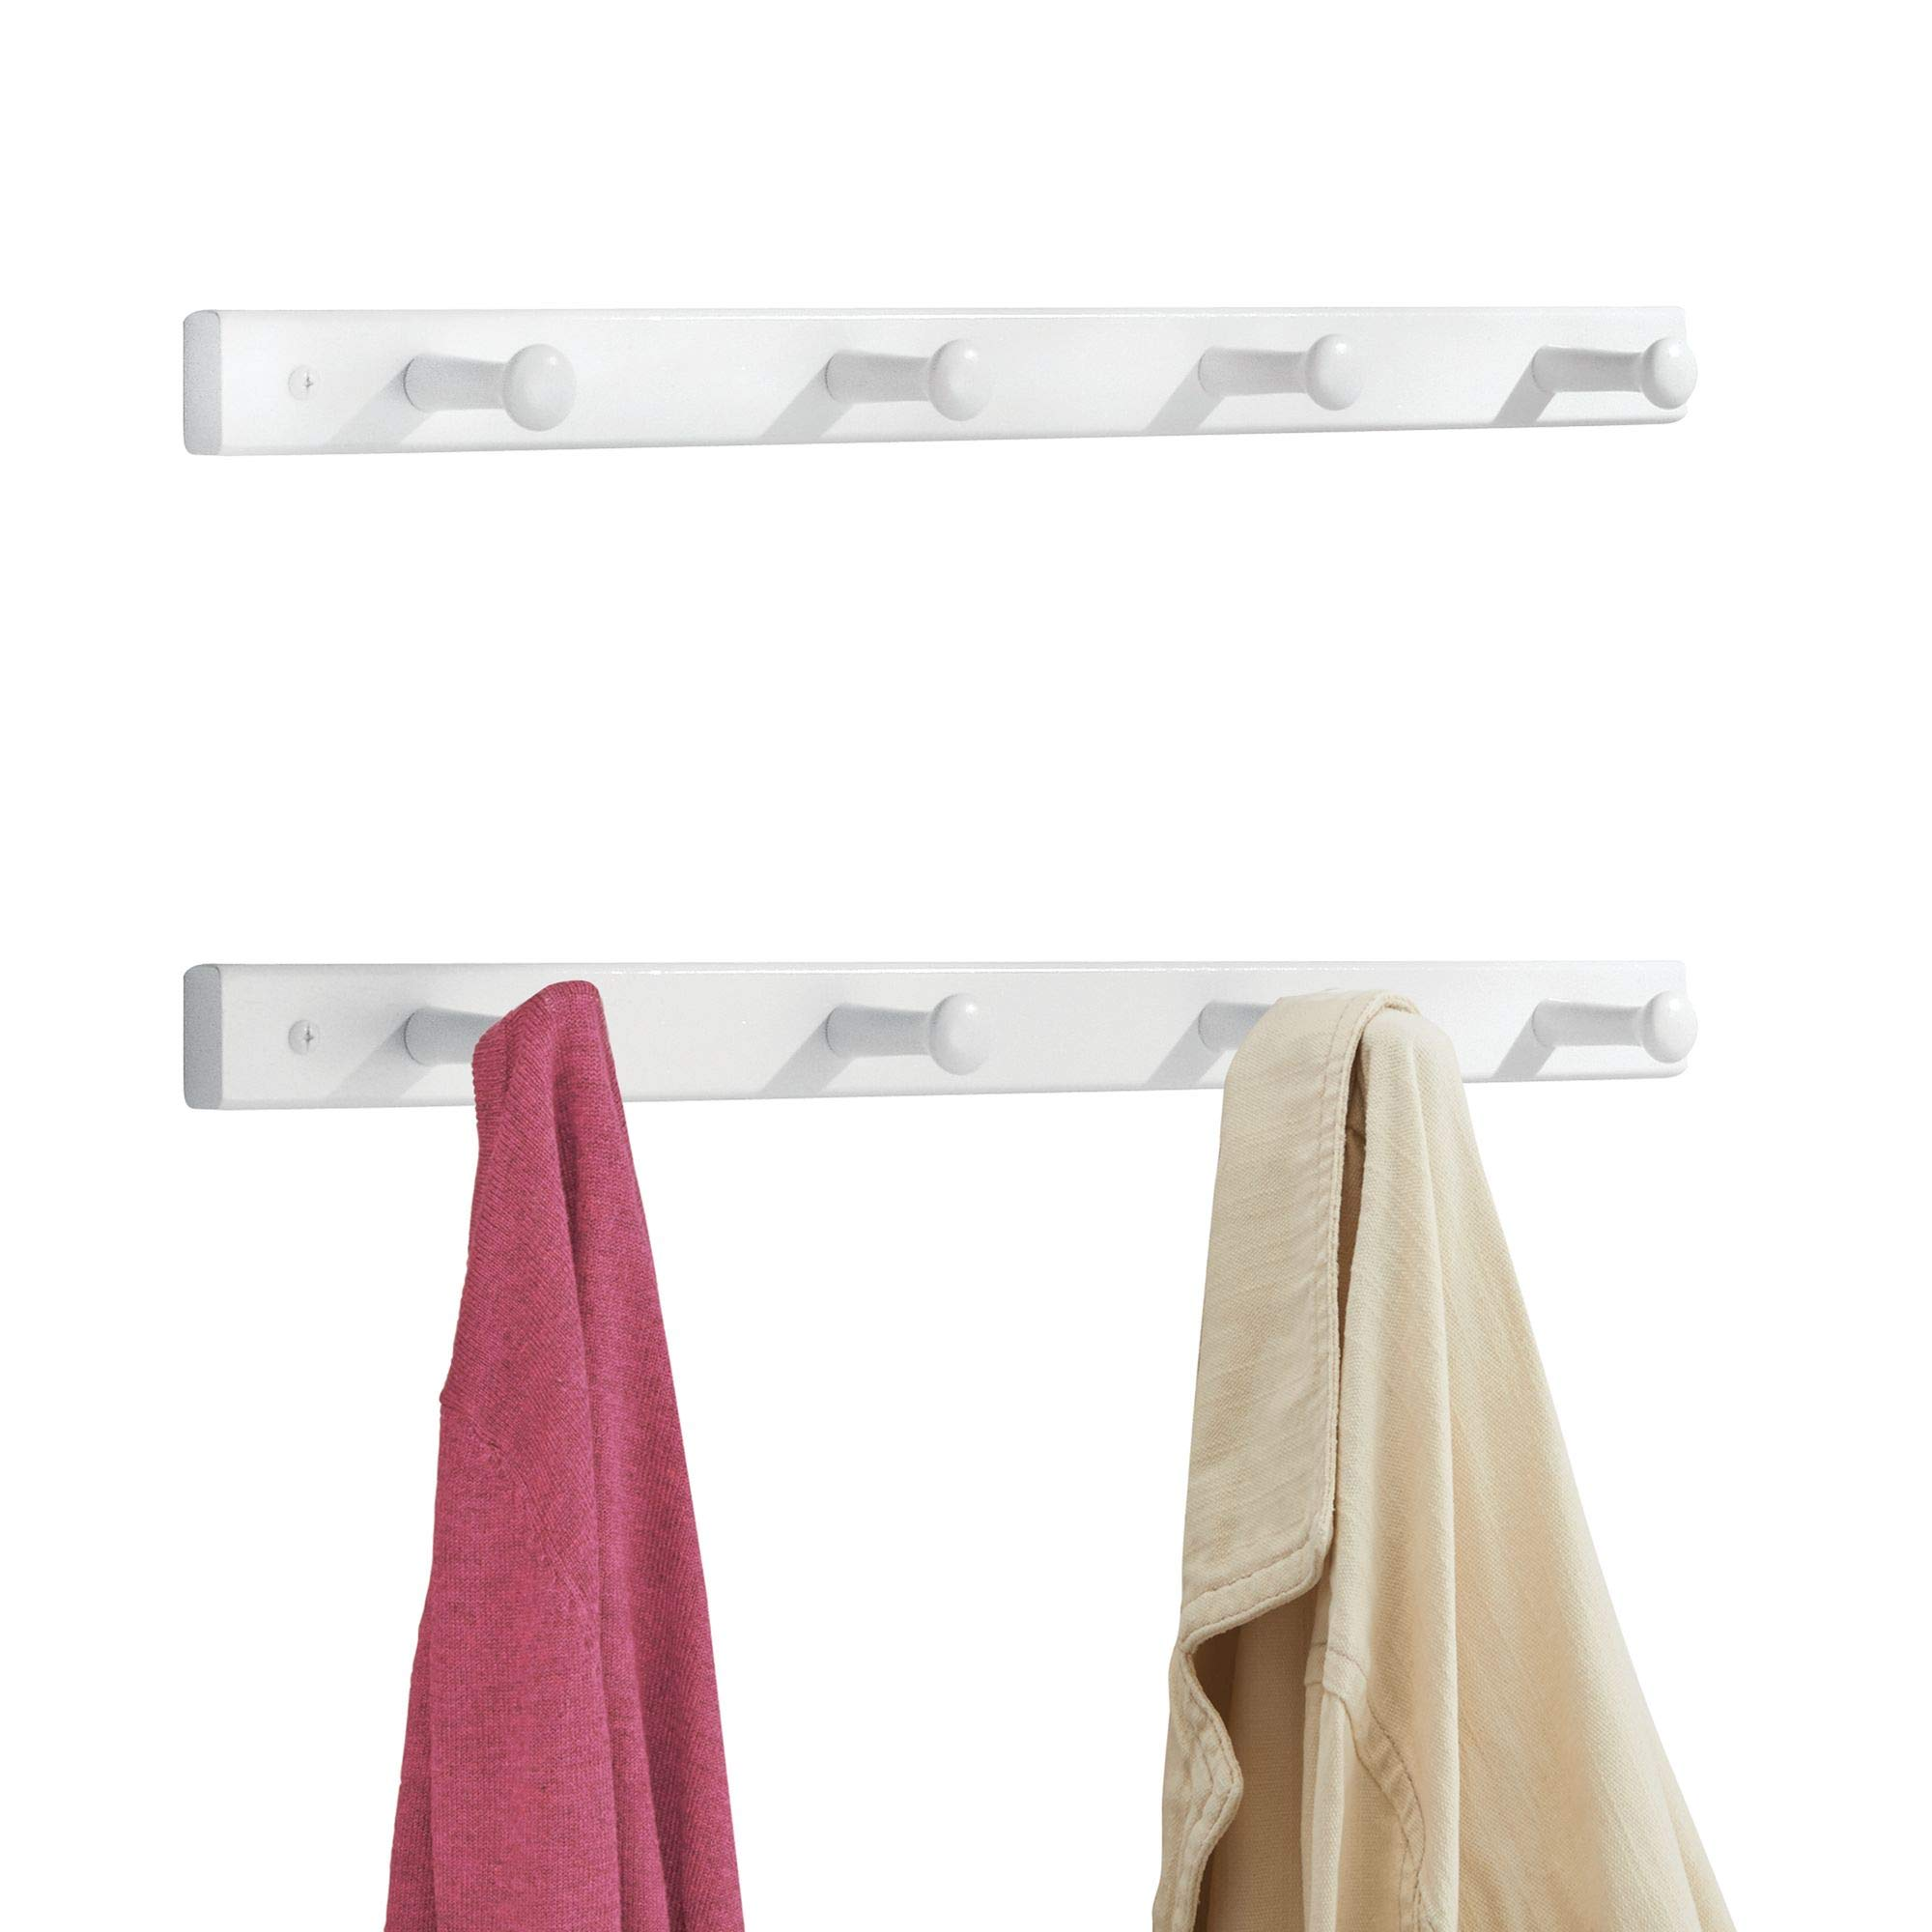 mDesign Wall Mounted Entryway Hallway Shaker Storage Organizer Wood Racks for Jackets, Coats, Hats, Scarves - Pack of 2, 4 Pegs Each, White